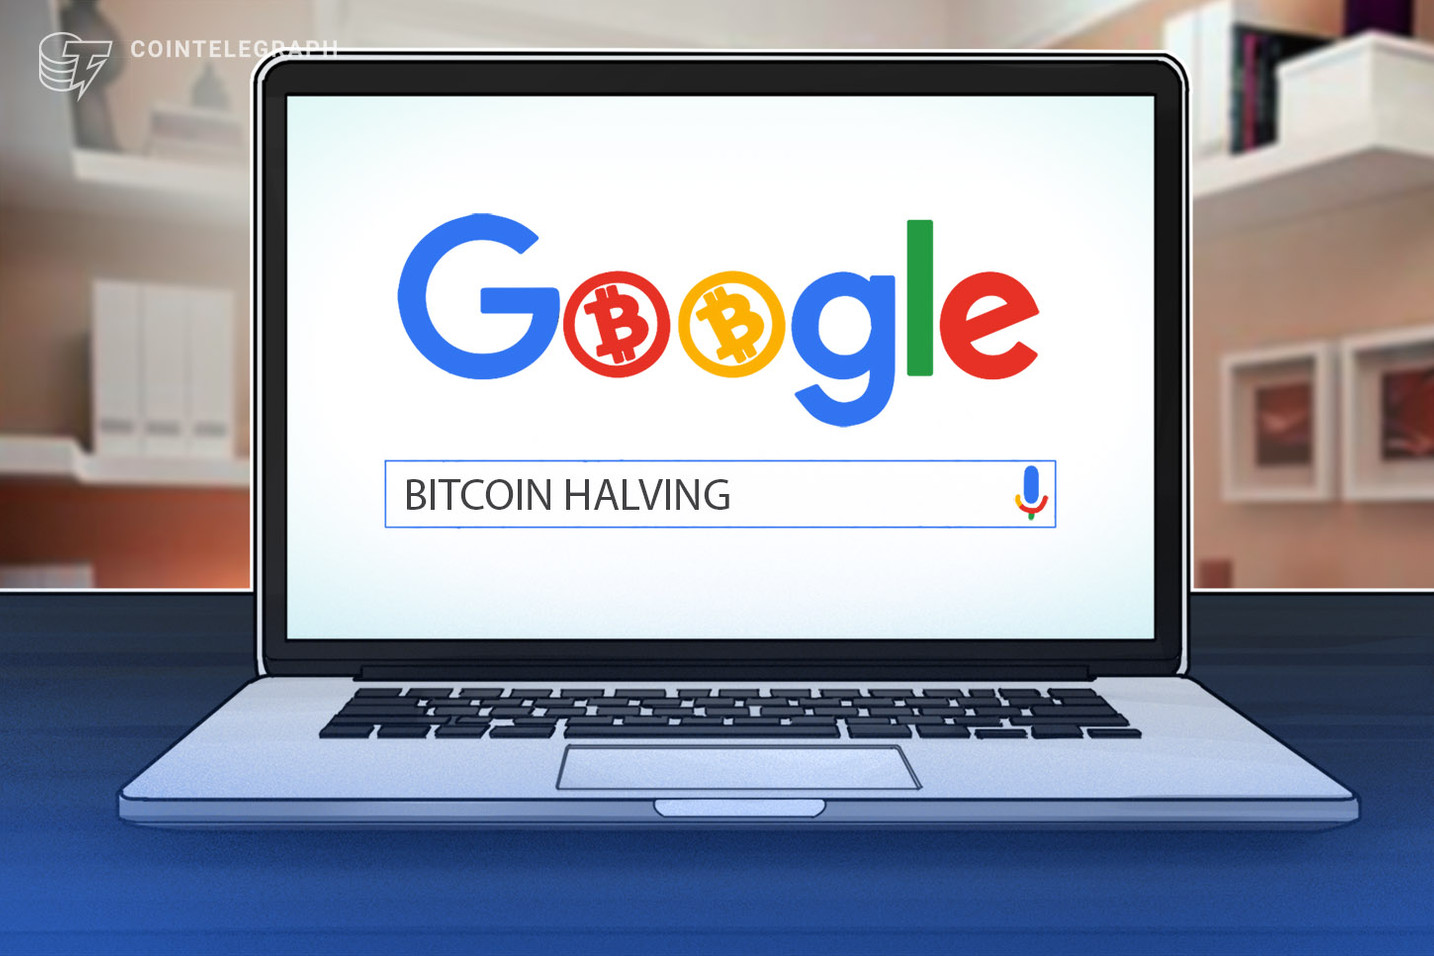 Search Volume for 'Bitcoin Halving' Outflanks Previous All-Time High